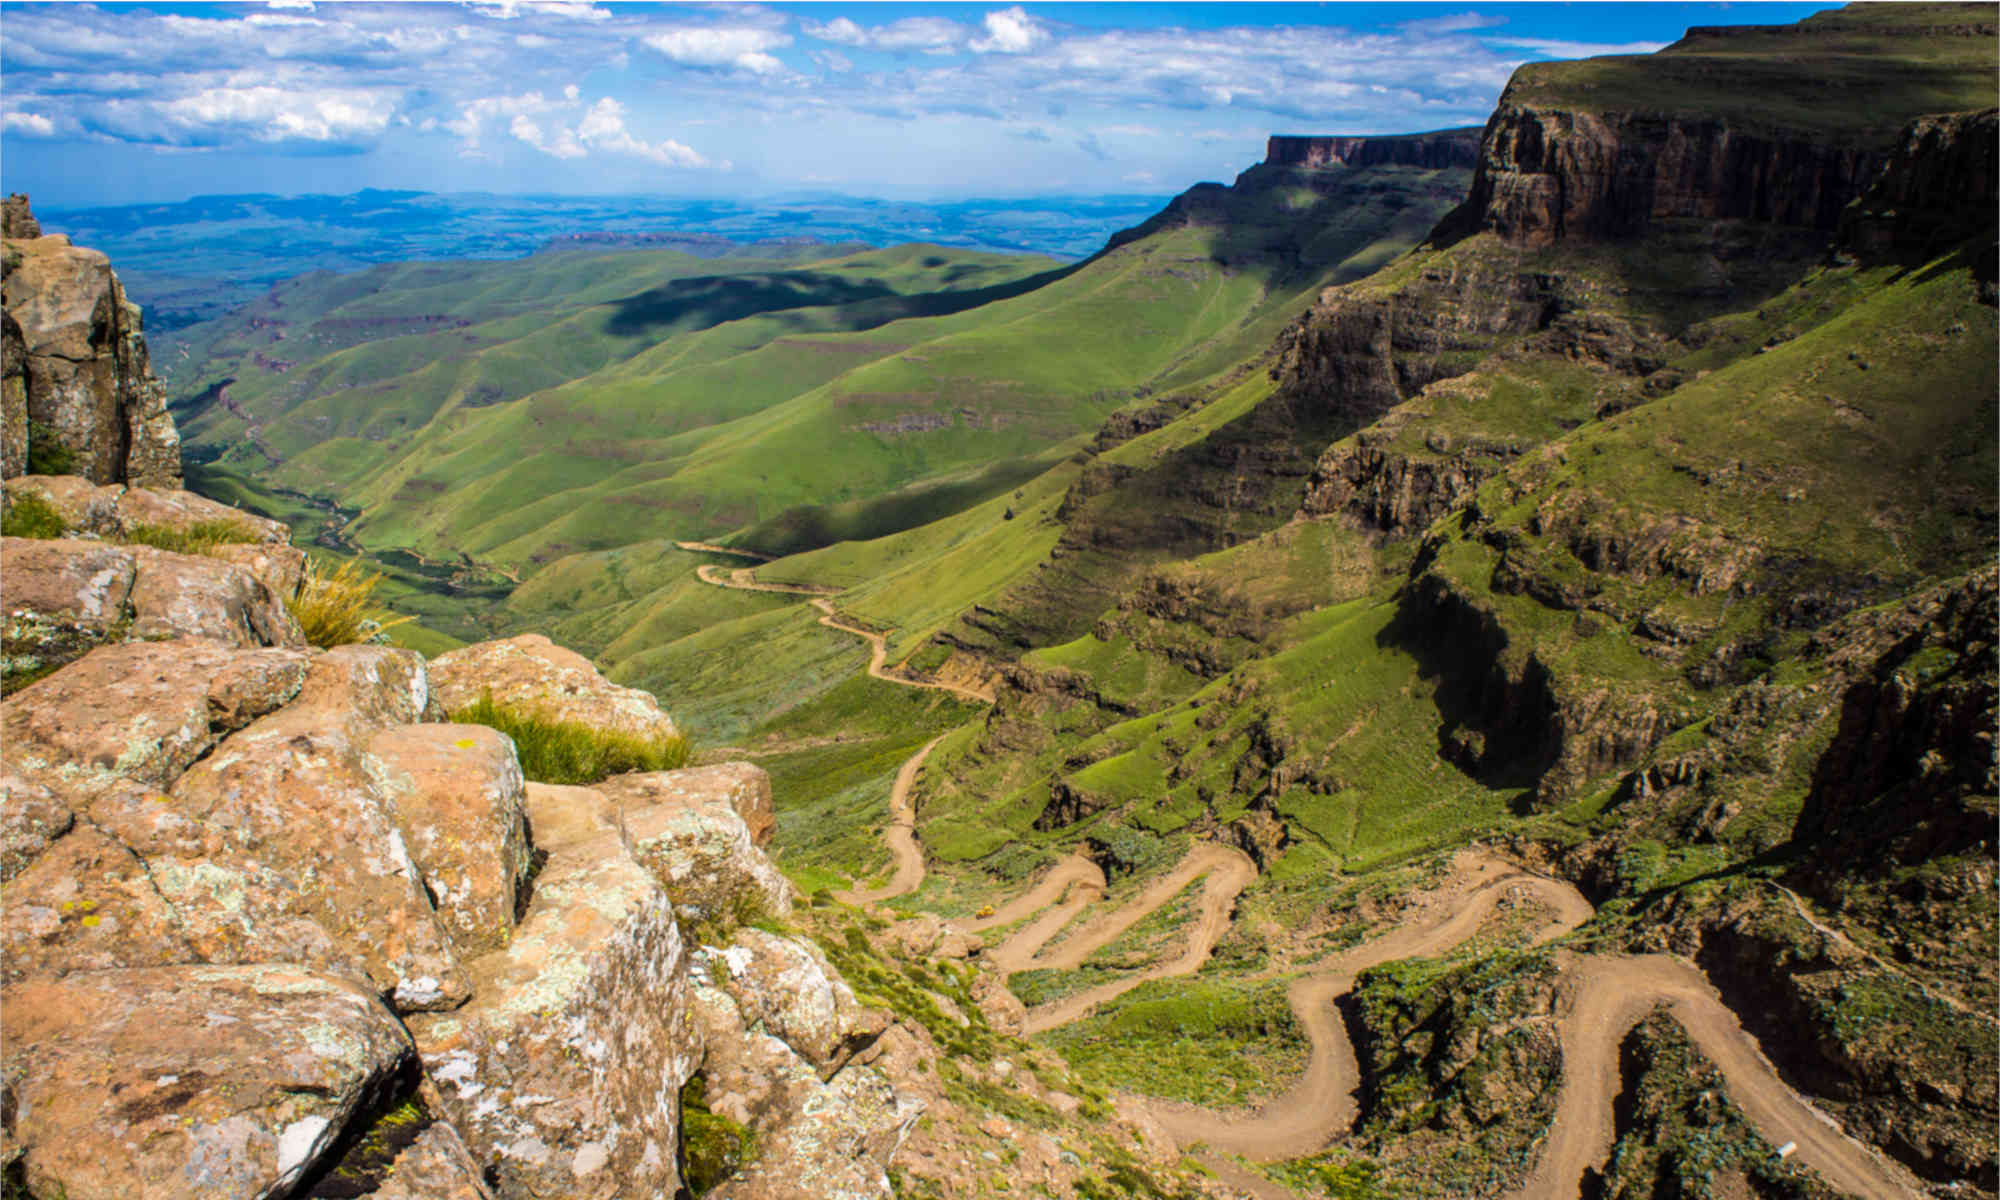 view of road from high up in Sani Pass